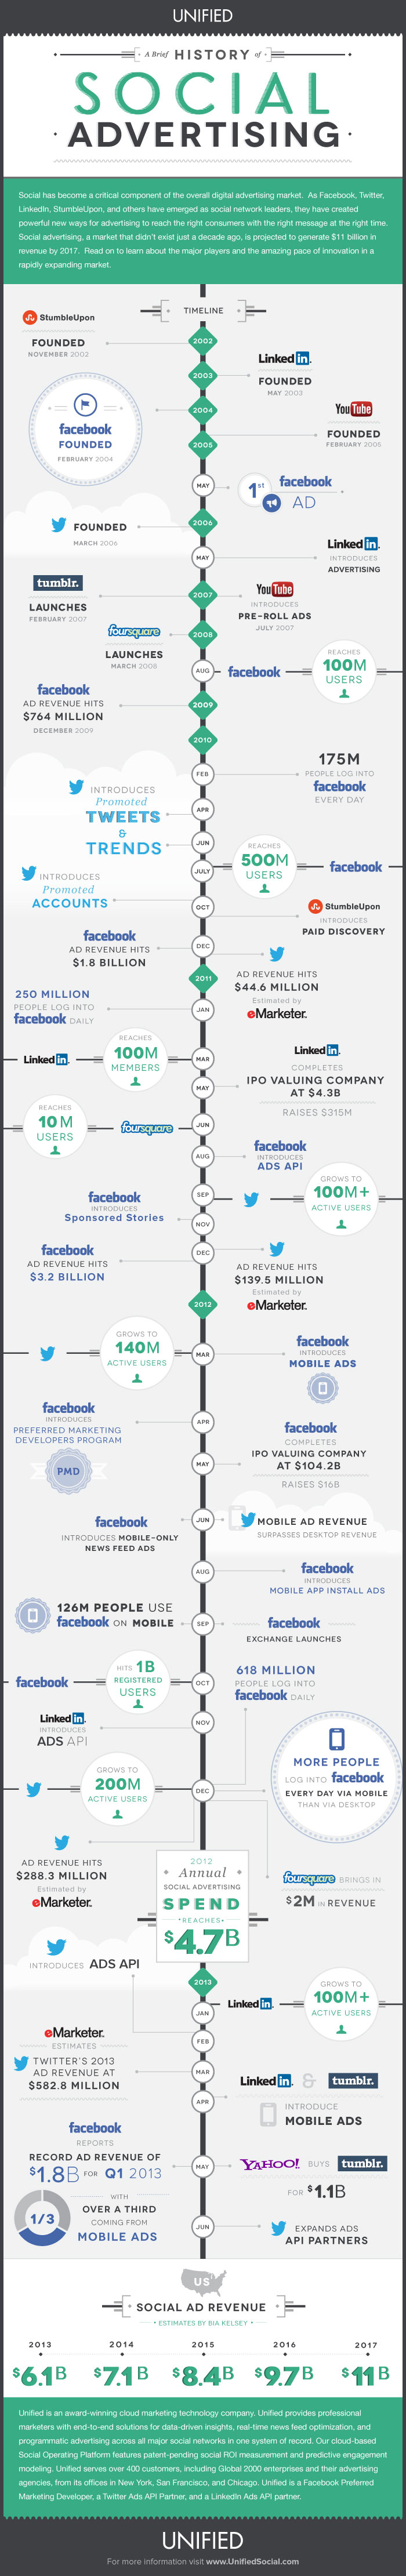 history of social advertising  timeline from 2002  u2013 2013  infographic